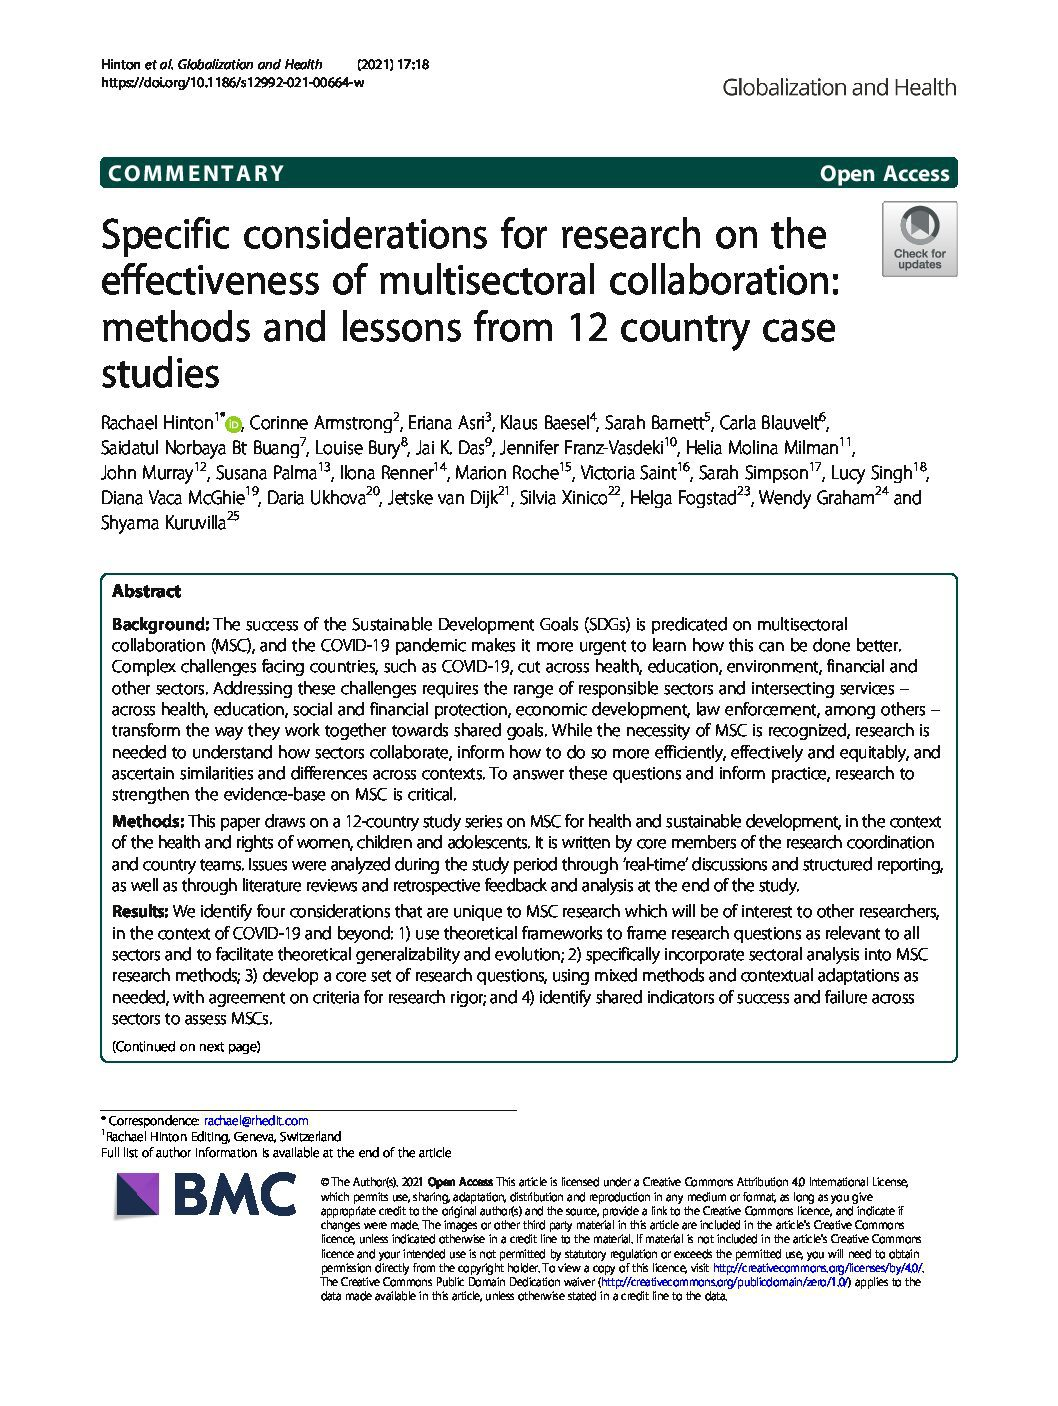 Specific considerations for research on the effectiveness of multisectoral collaboration: methods and lessons from 12 country case studies thumbnail